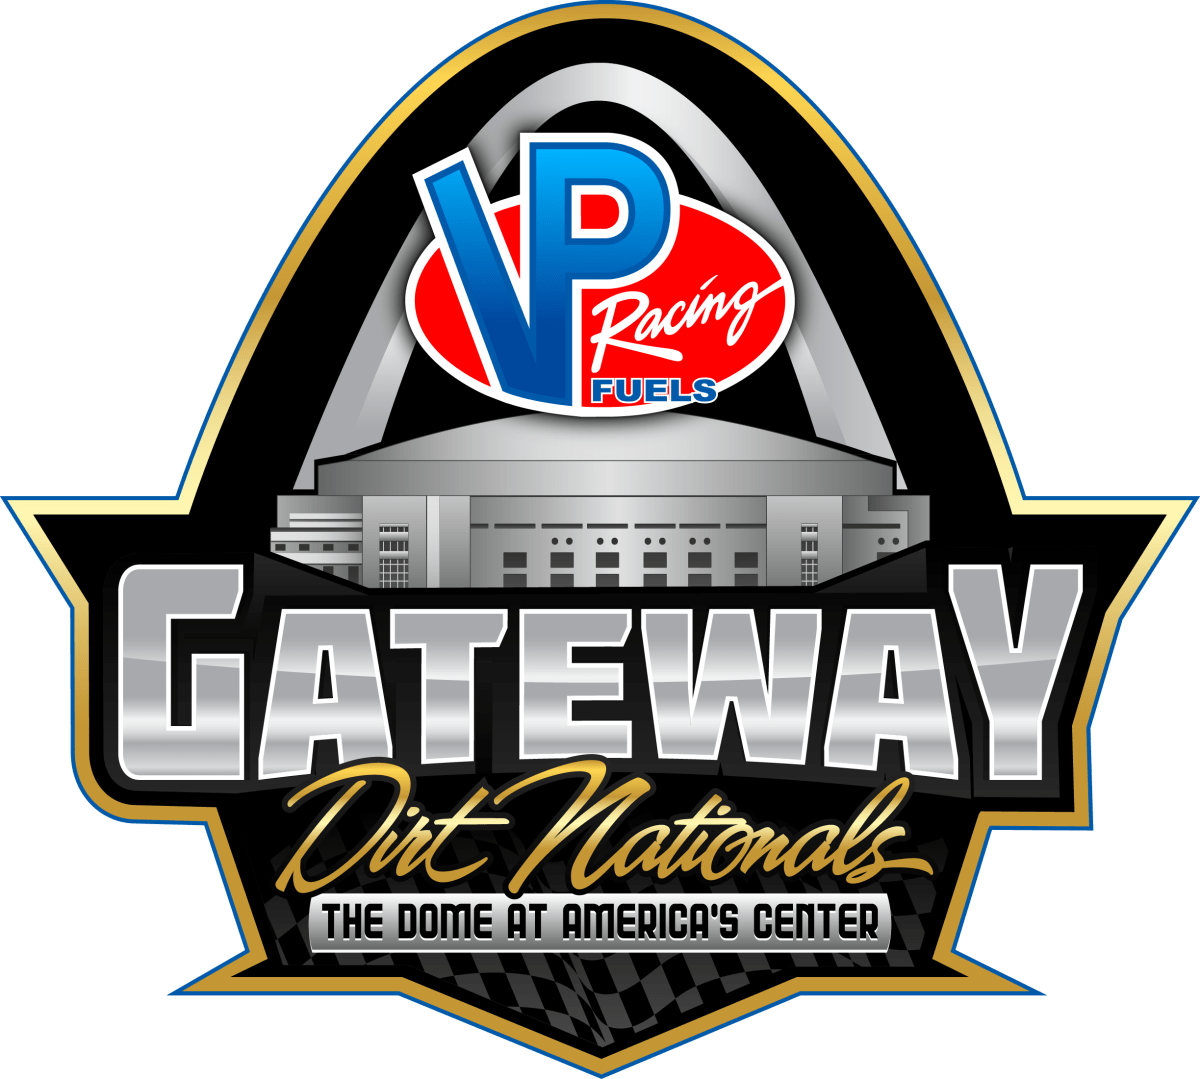 Gateway Dirt Nationals returns to St. Louis in 2019-2021